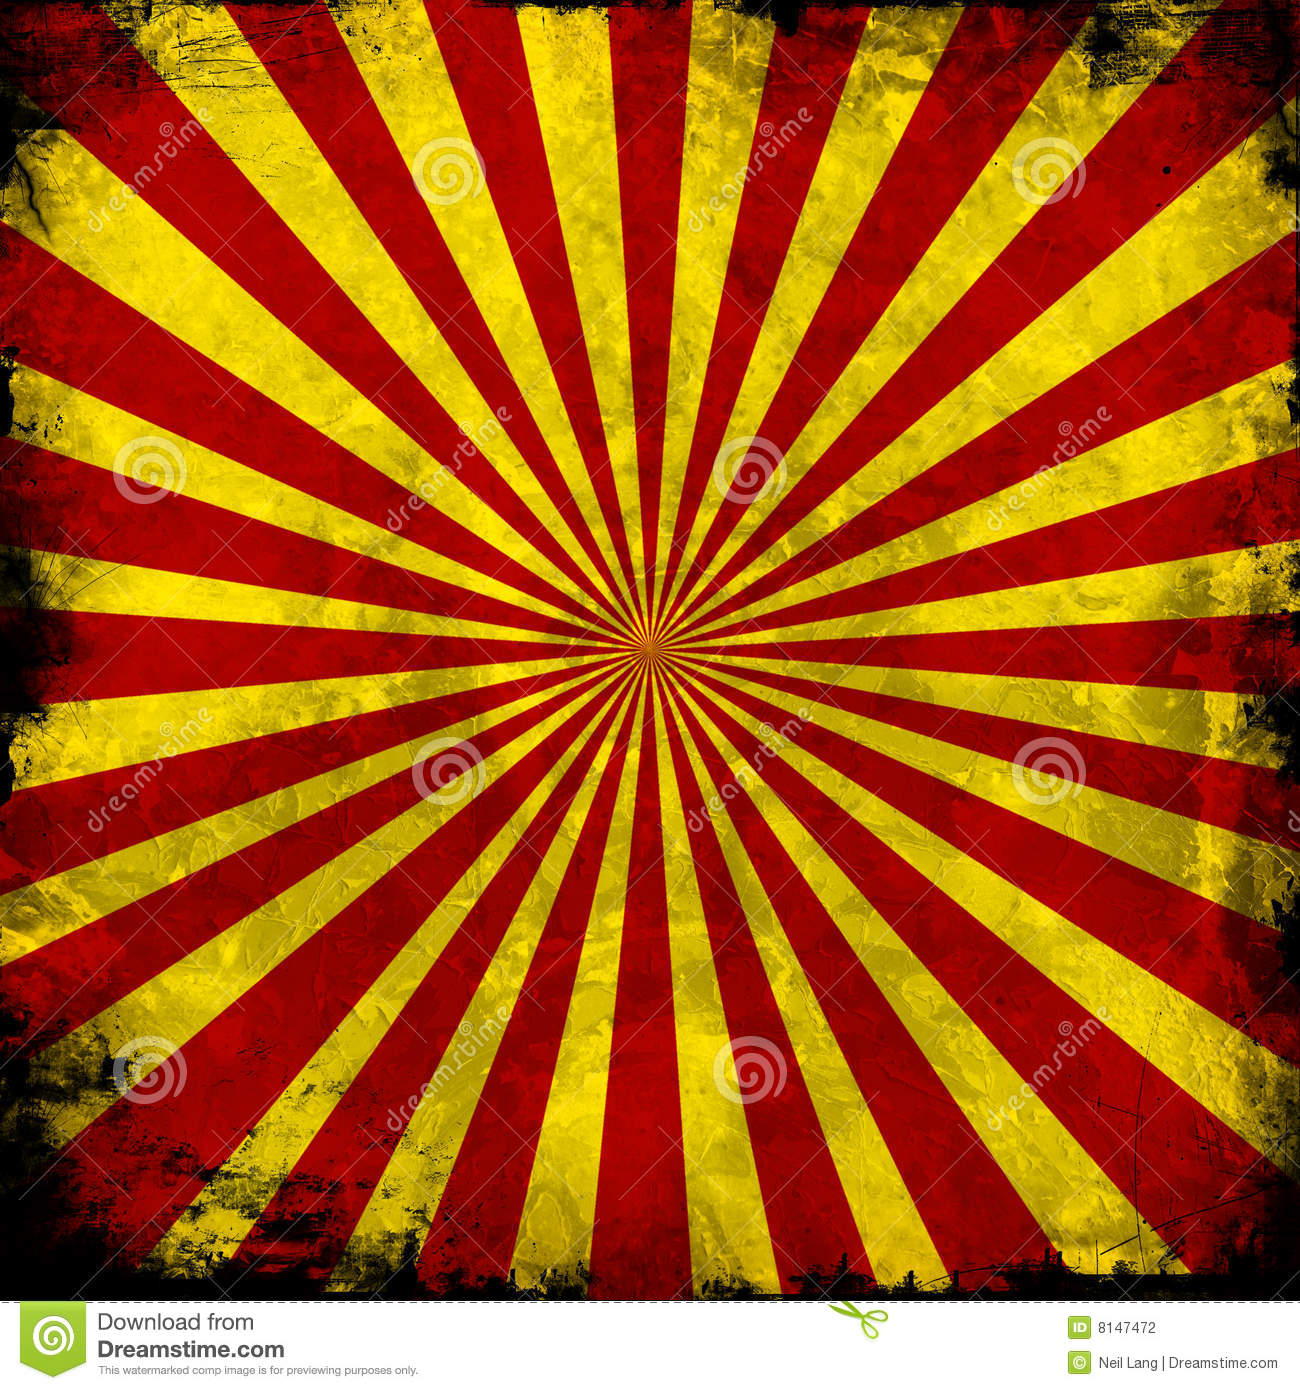 Red and yellow pattern